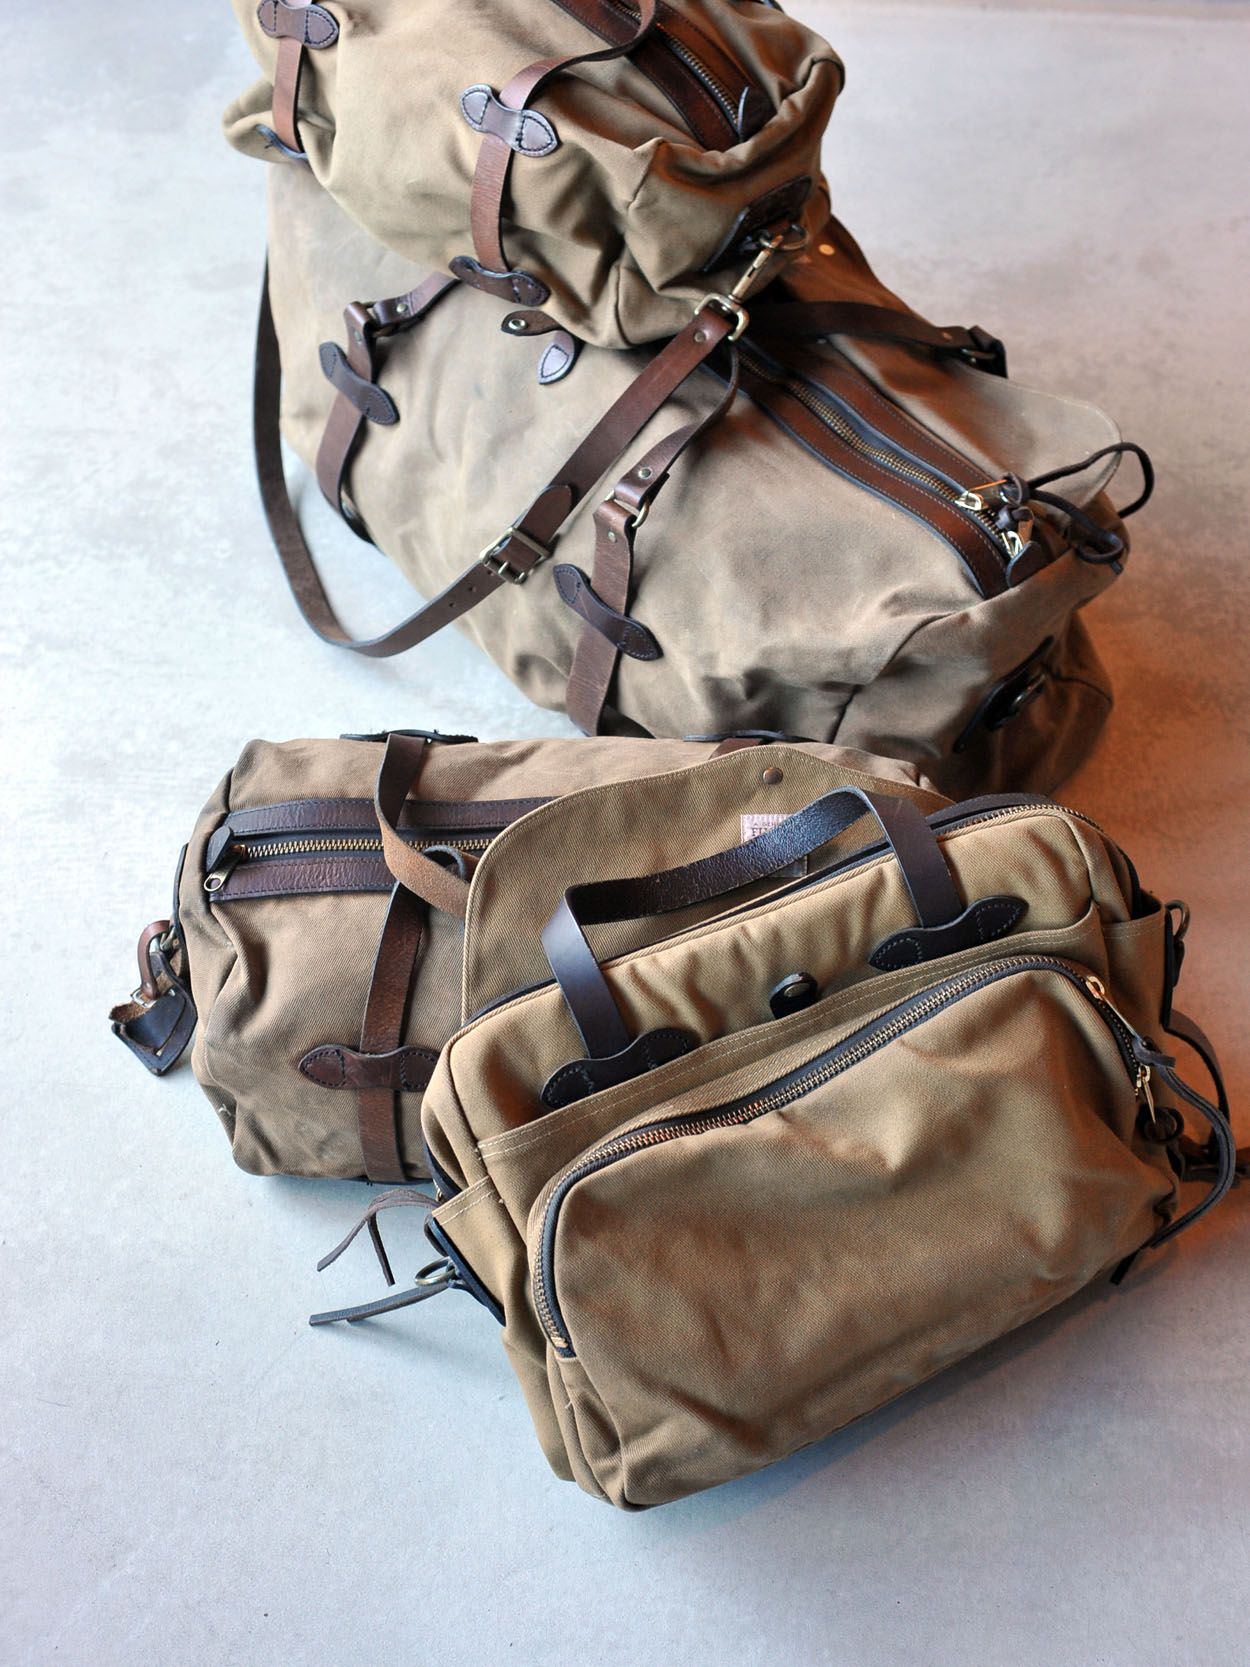 6a27884f3f75 Filson Duffle Bag Large (Patina